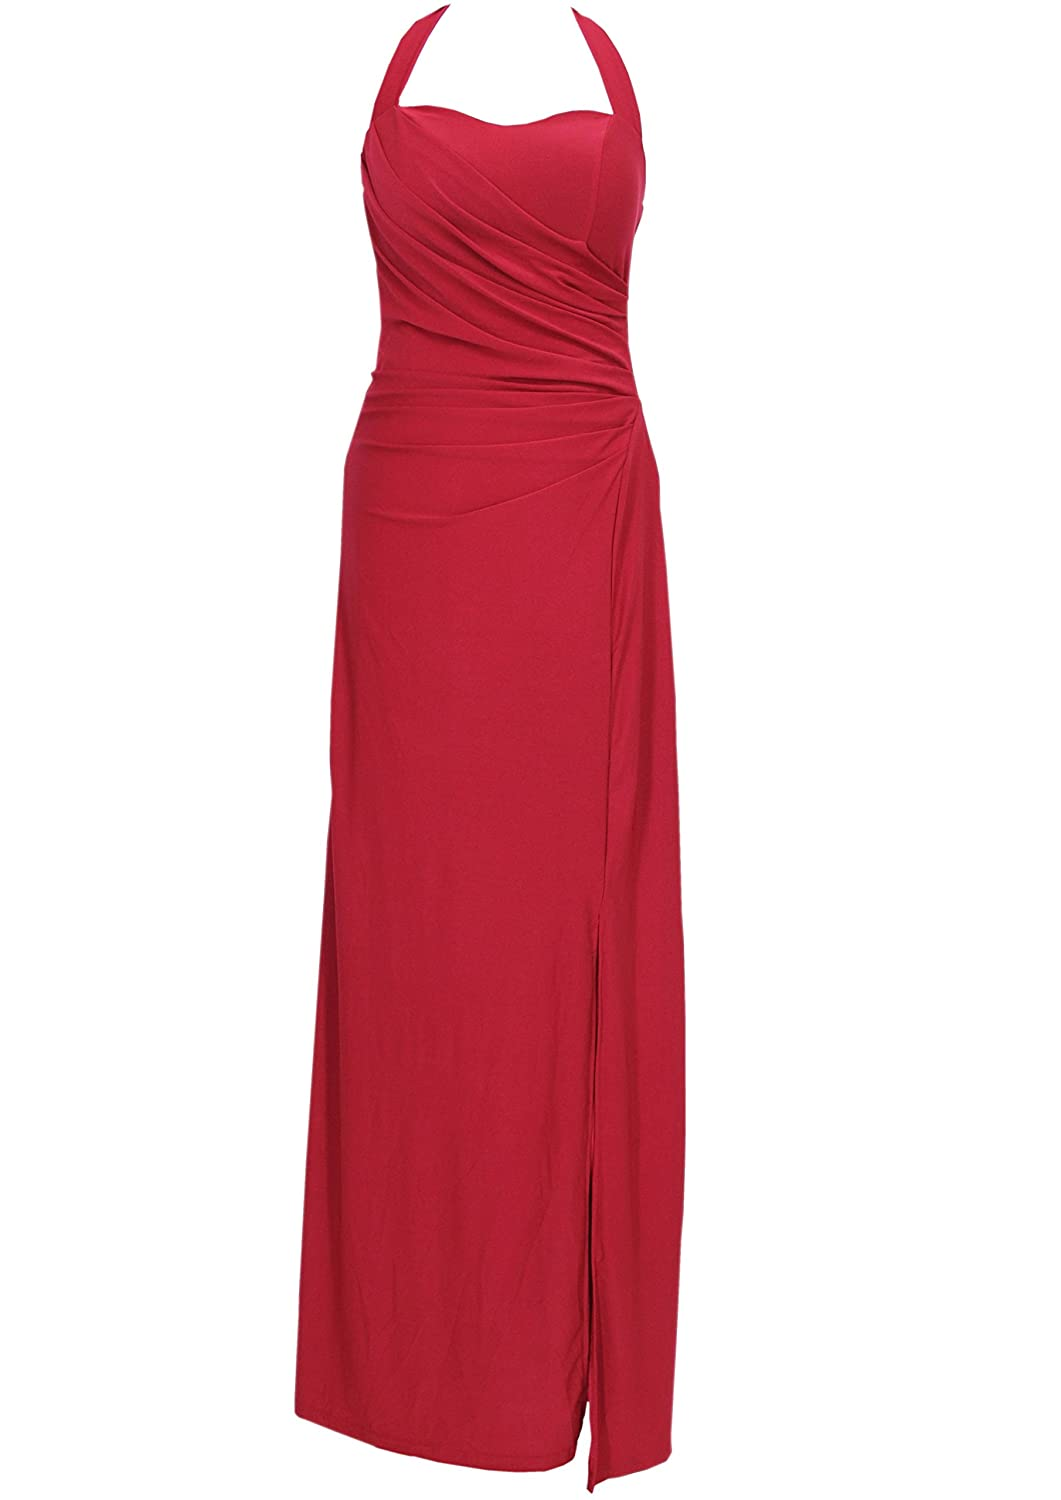 KAJ Moden Long Jersey Amanda Women's Halter Neck prom dress with side slit, Various Colours and Sizes S?-?XL